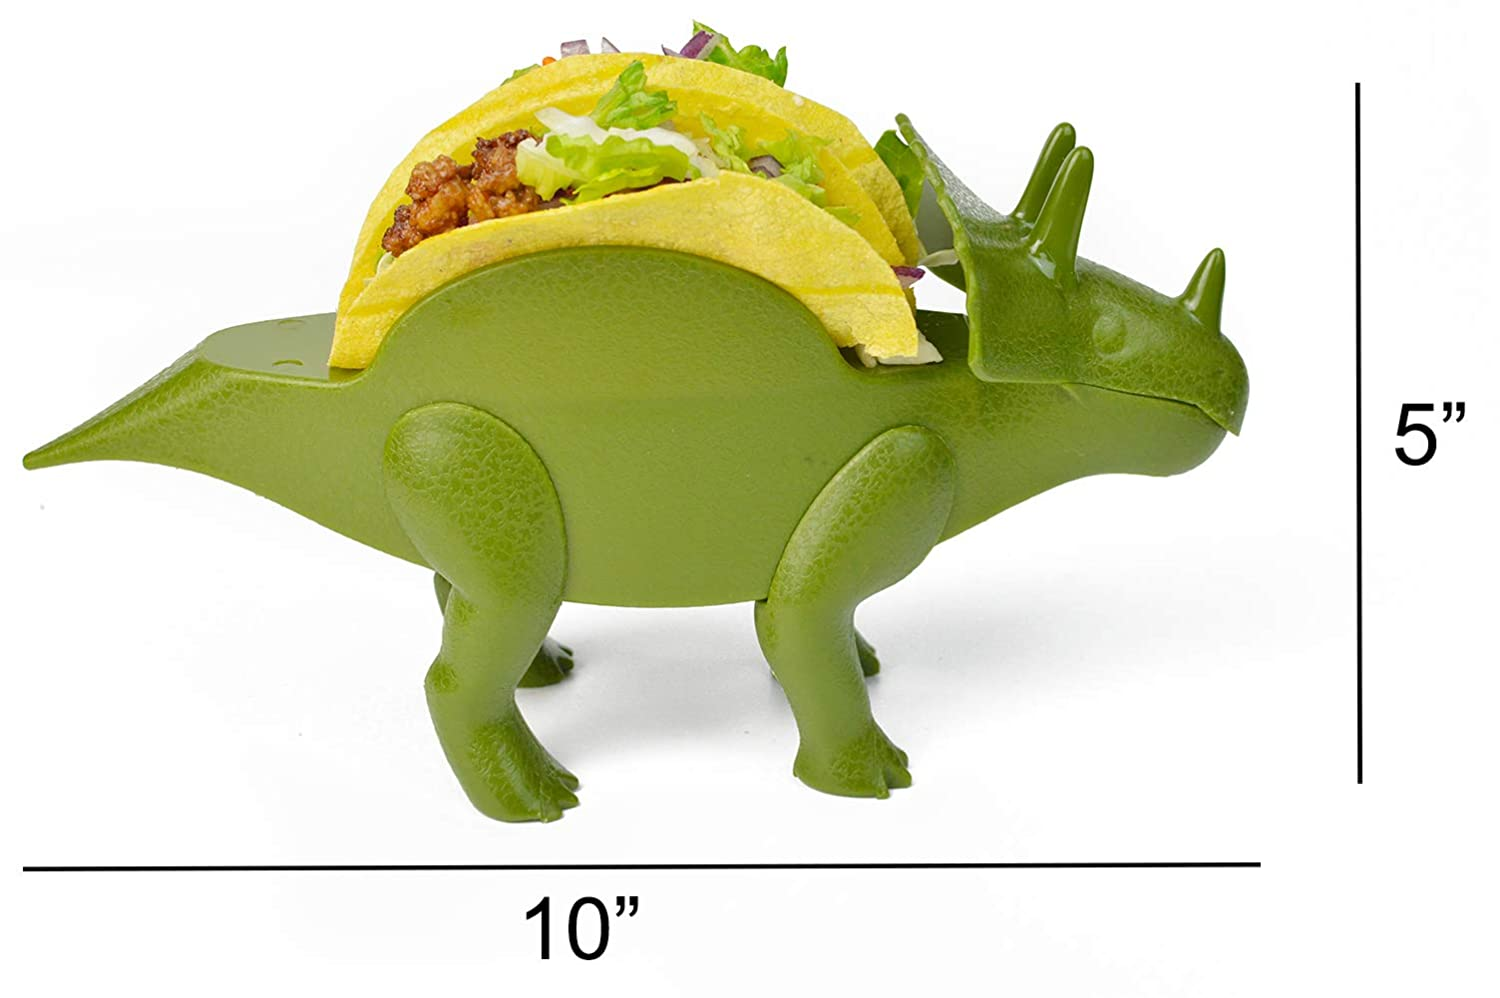 HapWay 2 Pack Plastic Novelty Dino Taco Holder for Kids Dinosaur Taco Holder Fun Triceratops Taco Stand Shell Holder for Taco Tuesday or Lunch Sandwiches